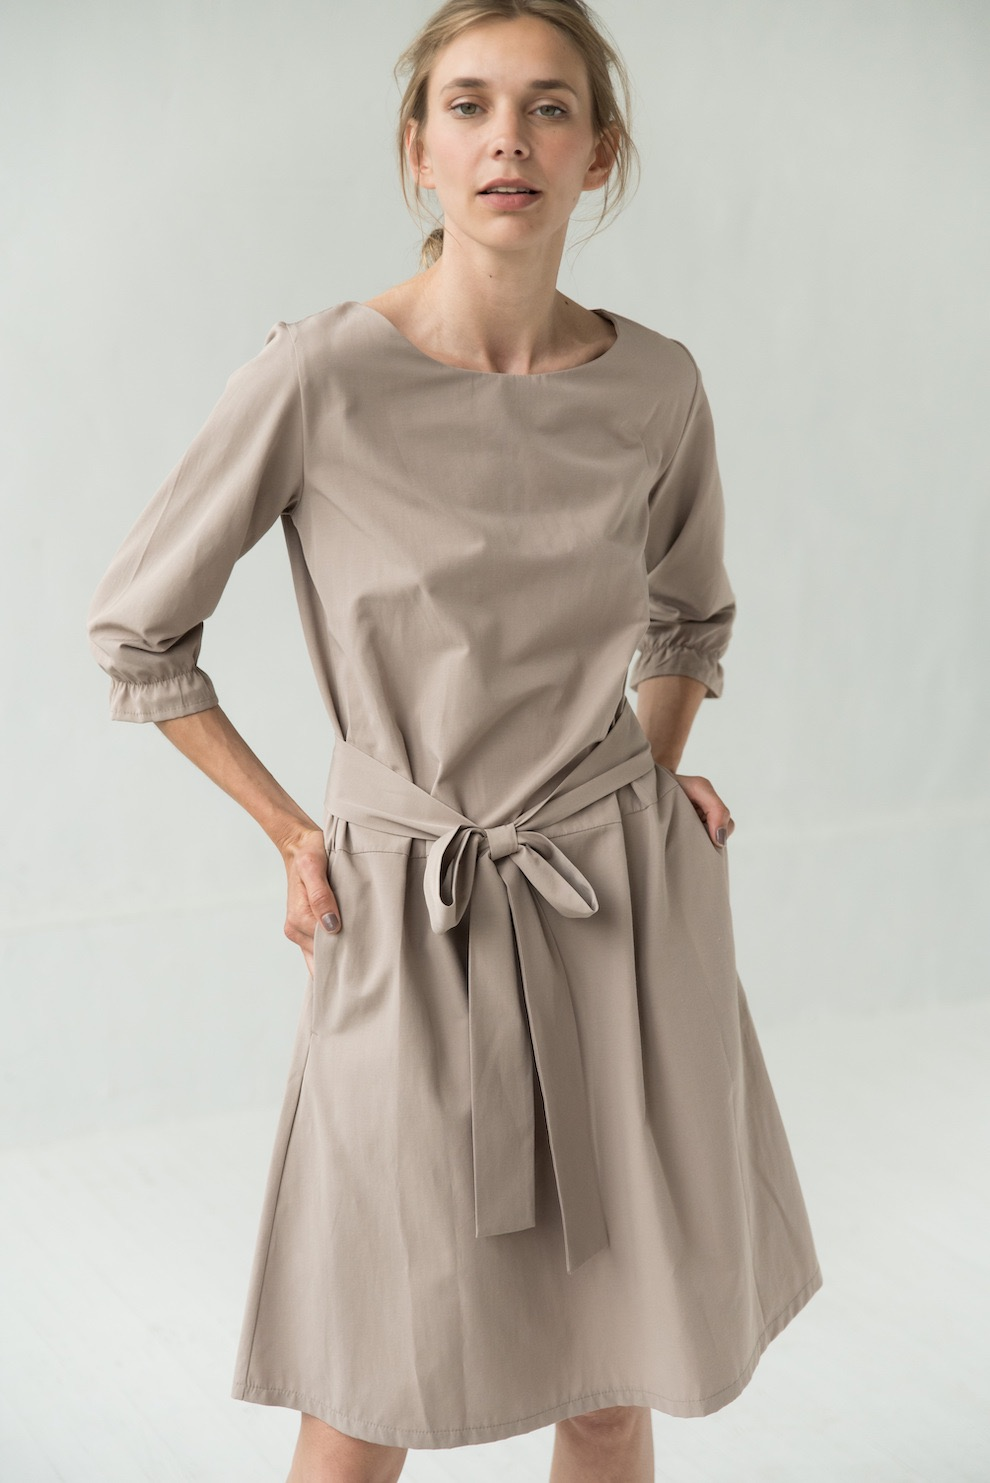 LeMuse sand SAND&DUNES EMMA dress